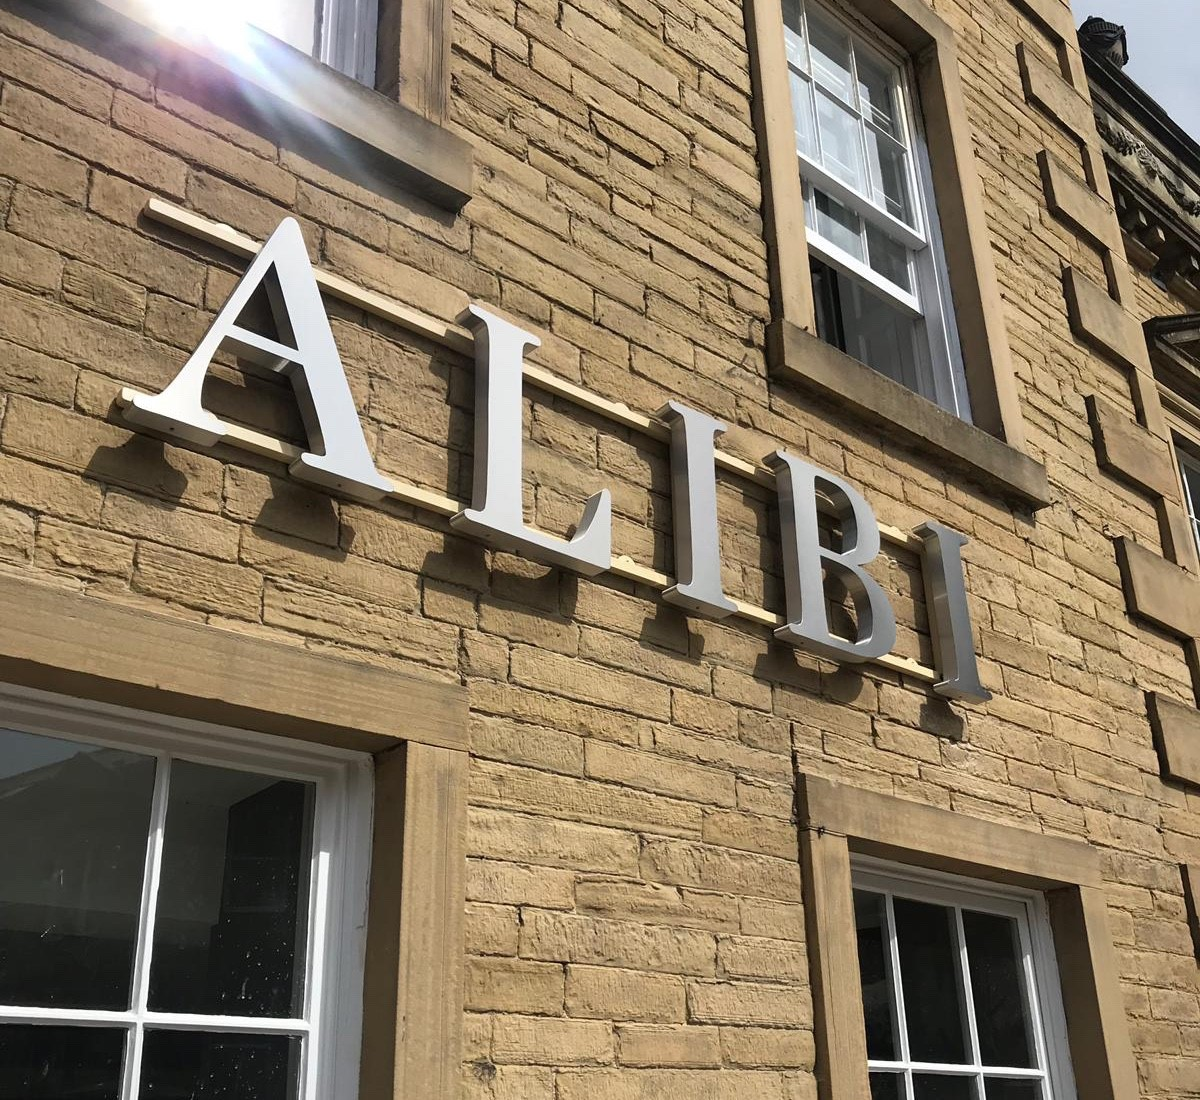 New signage at Alibi Bar and Restaurant 7 August 2019